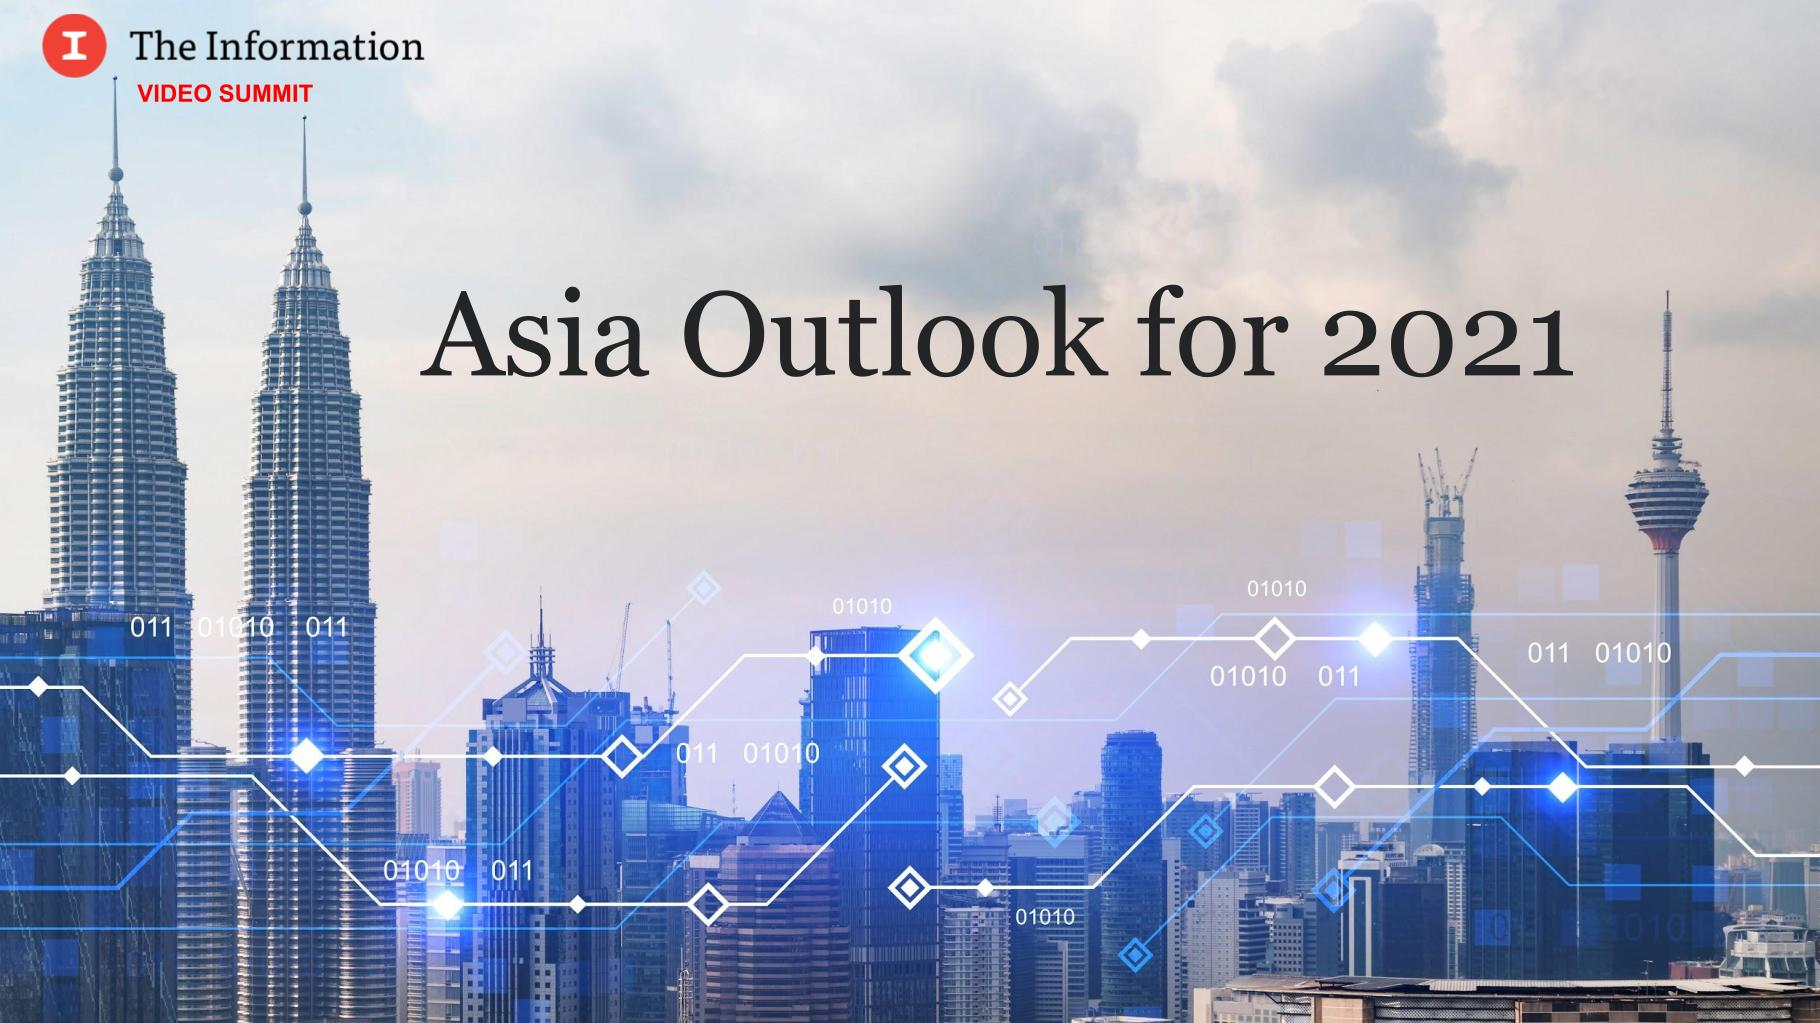 Asia Outlook for 2021